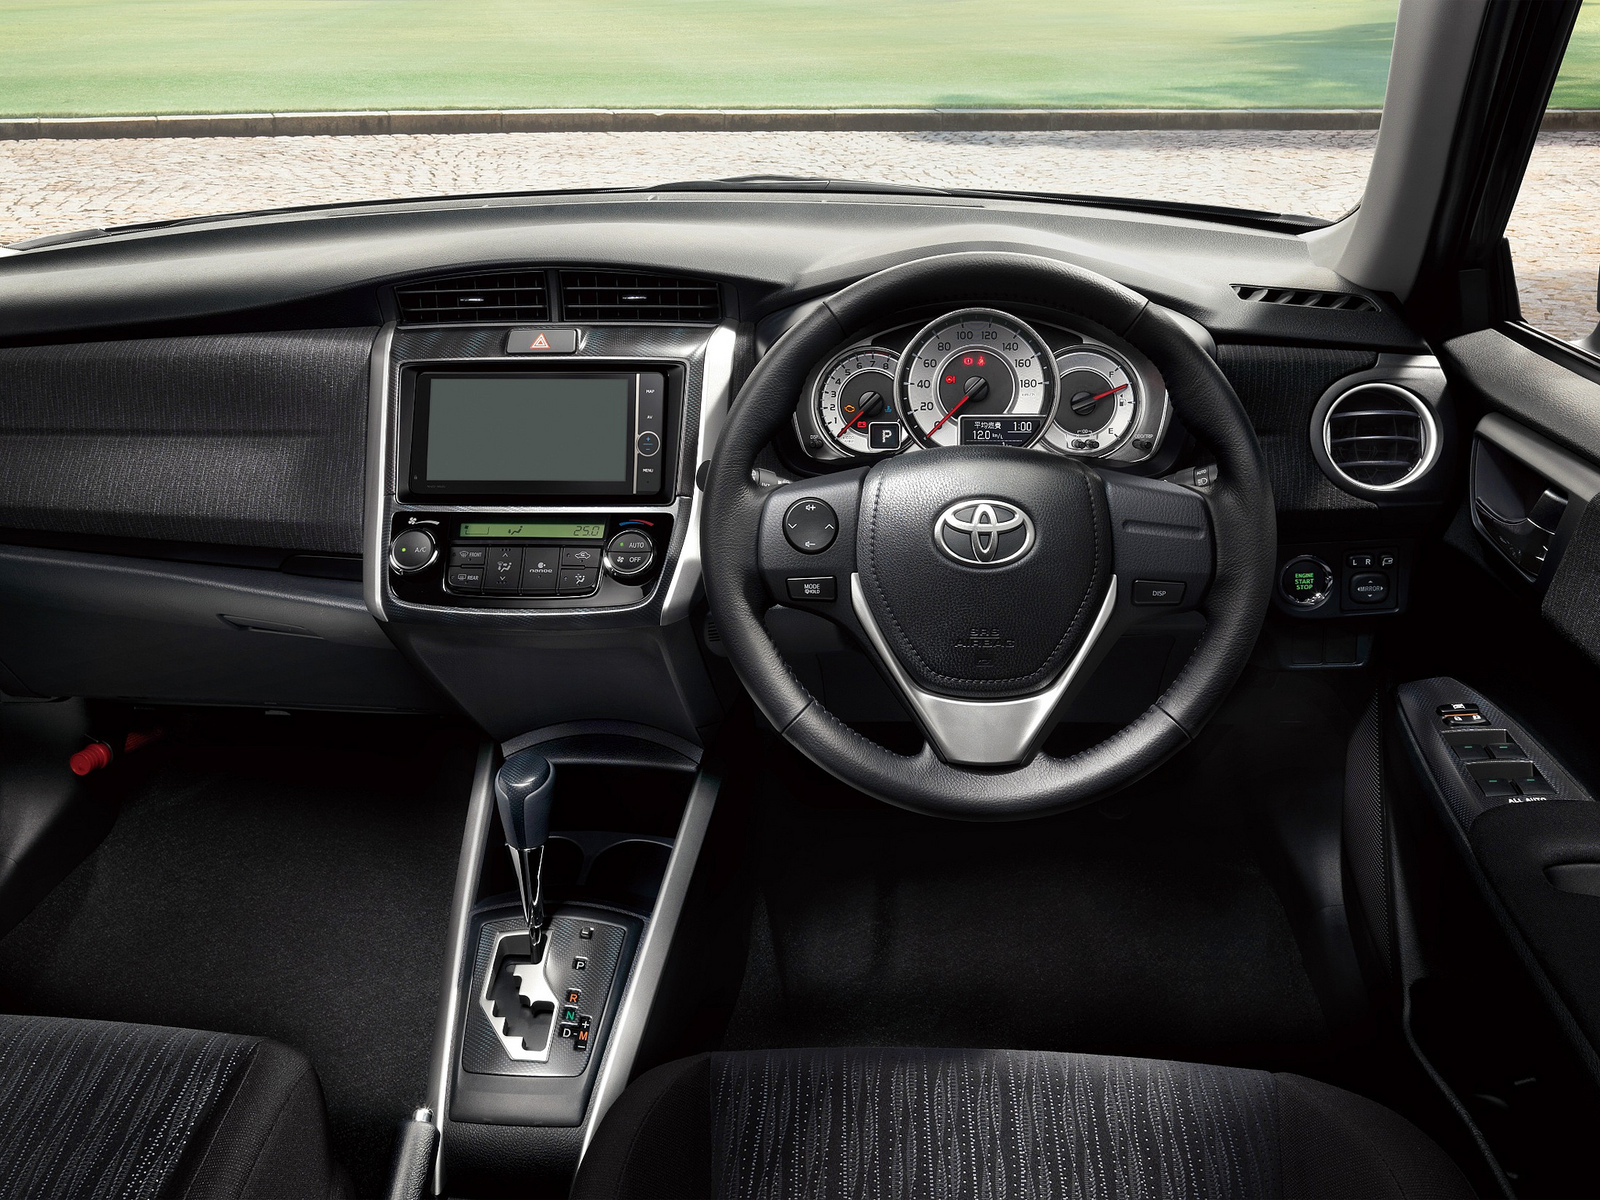 2012 Toyota Corolla Fielder 1.8S Aero Tourer dashboard | Flickr ...